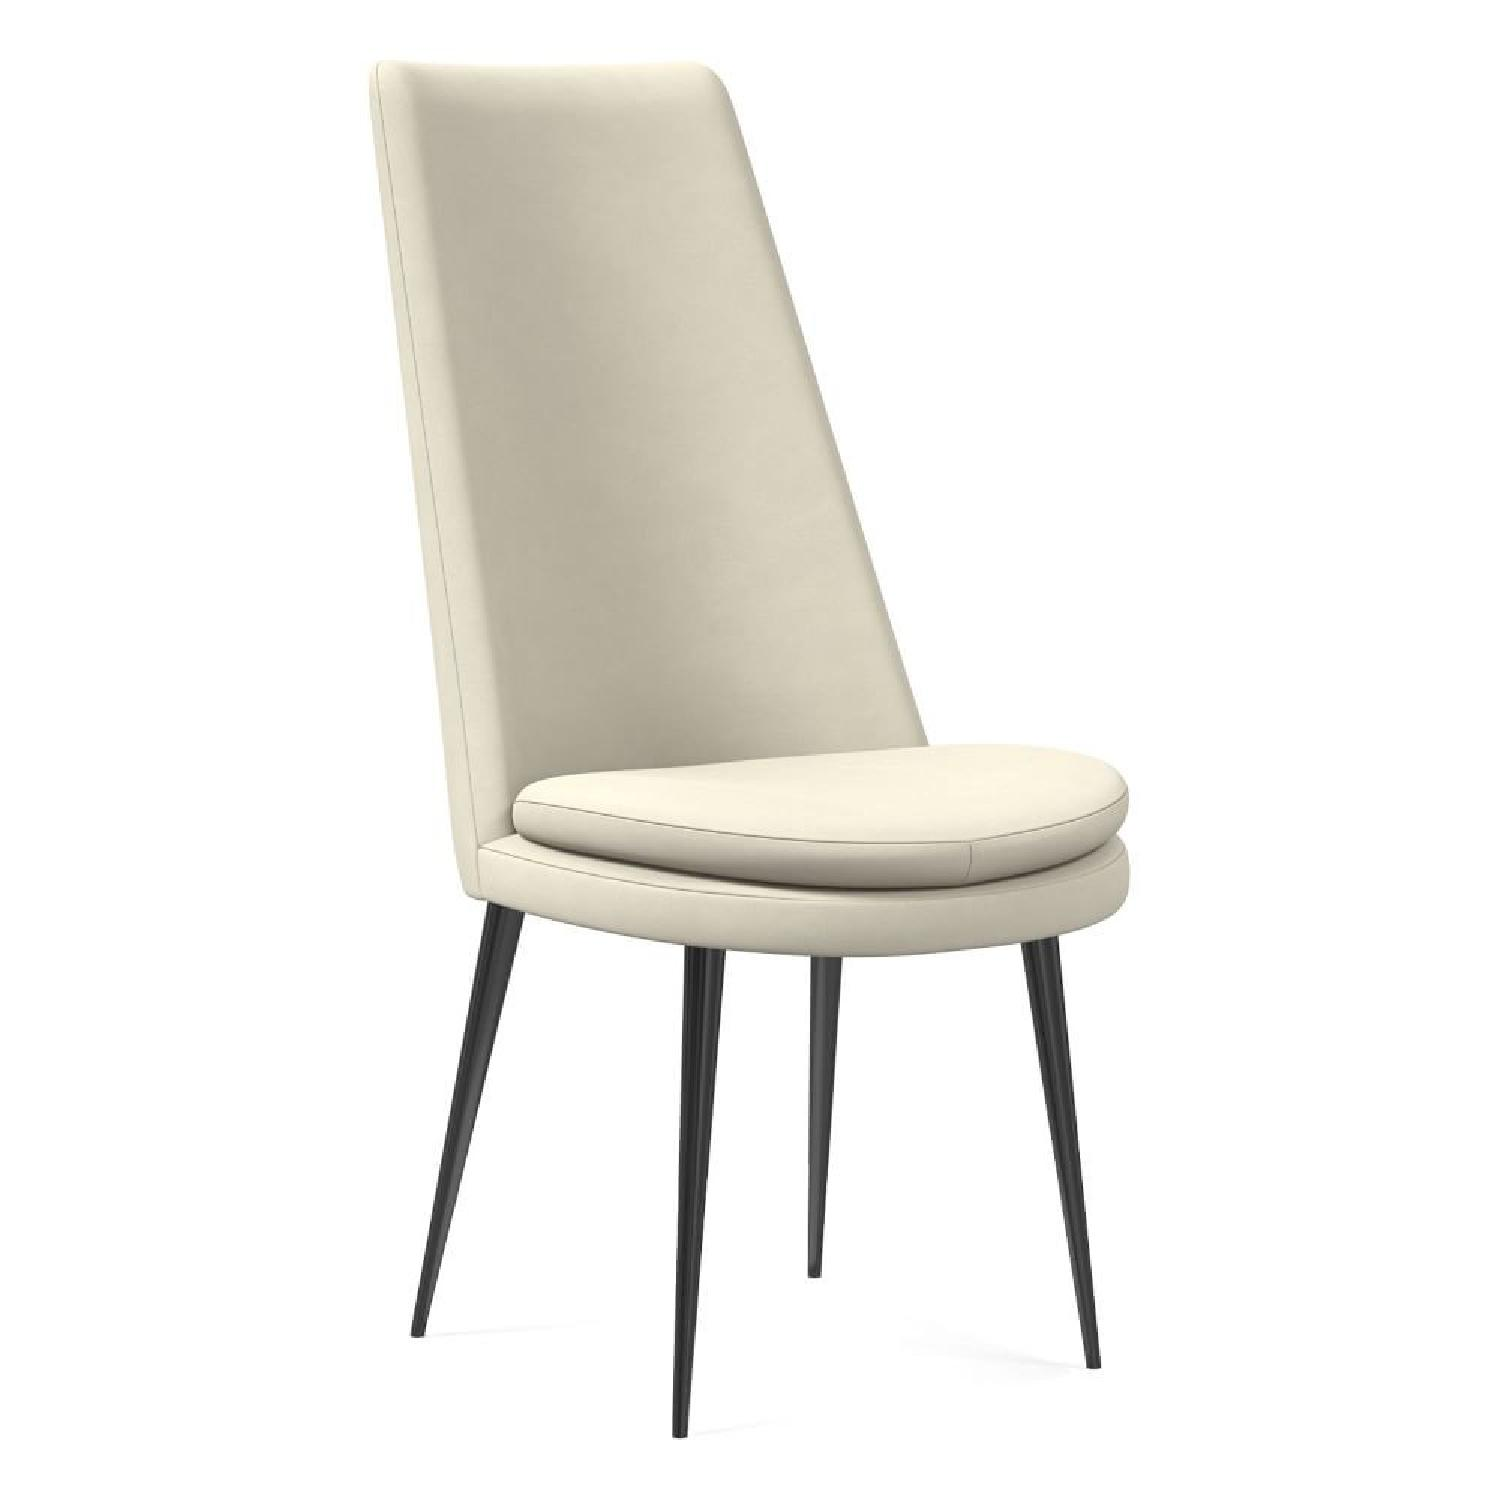 West Elm Finley High Back Velvet Dining Chairs - image-5